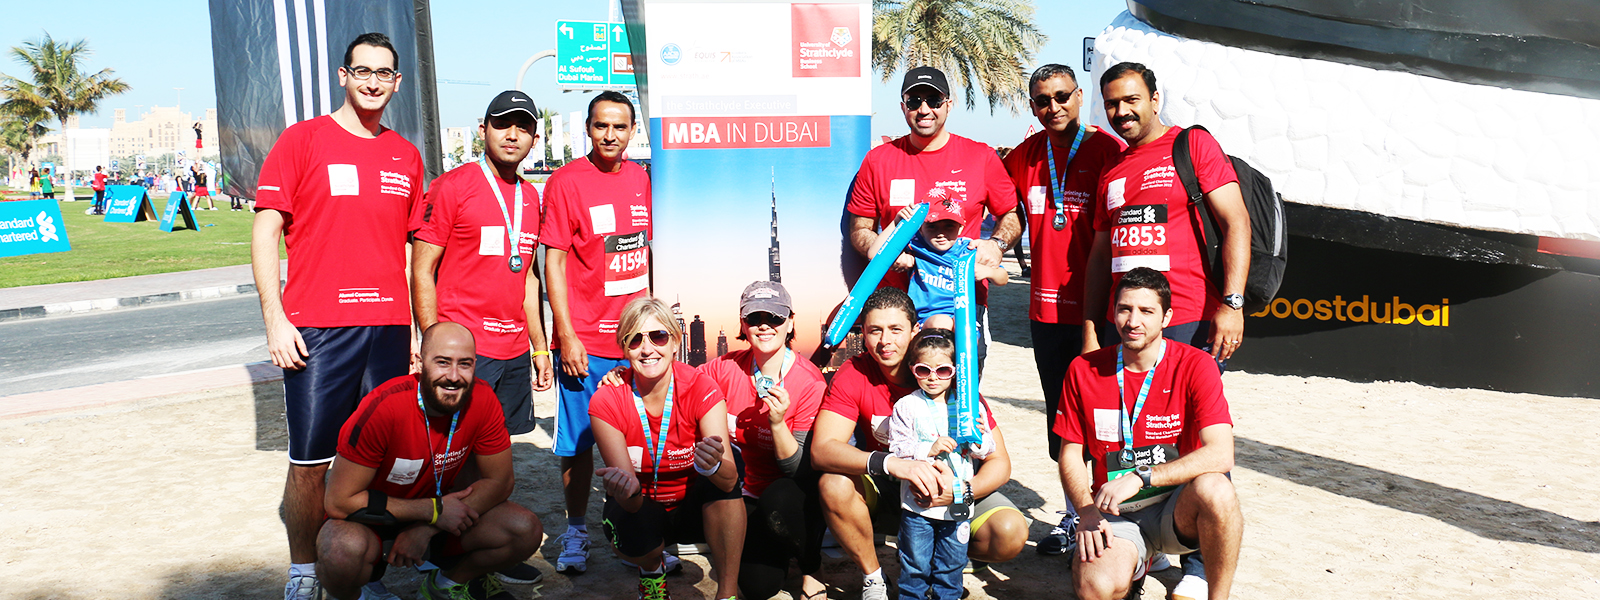 Strathclyde alumni group at Dubai marathon